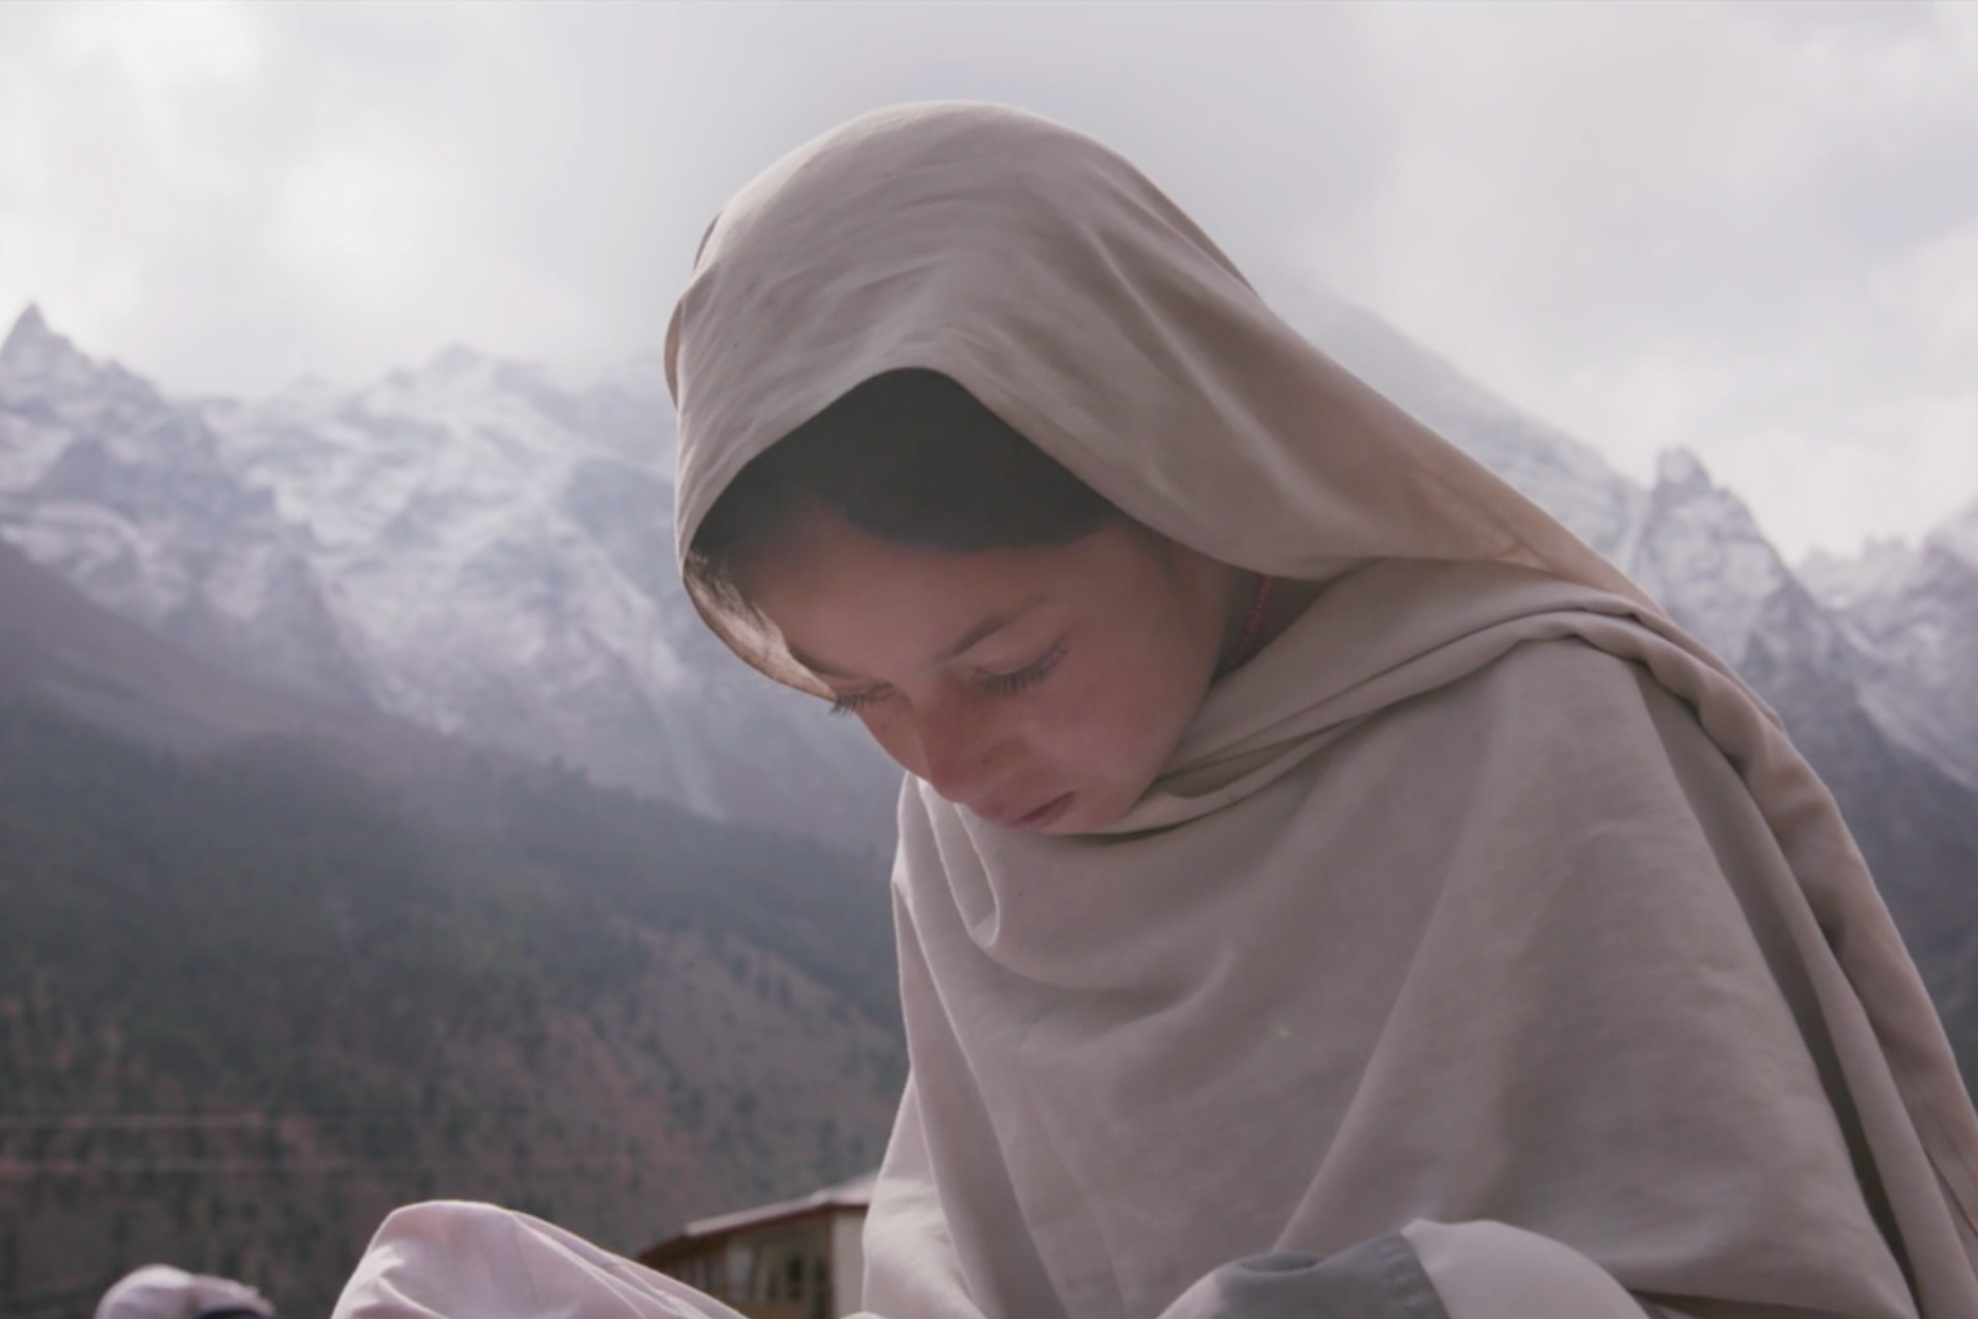 Girls Section - Life is hard in remote northern Pakistan – especially for women, who face significant cultural, economic, and geographic barriers to opportunity and education. For the first time, girls in the region are challenging tradition for their right to go to school.Run time: 12 minutes 30 secondsDirector: Kathryn Everett *